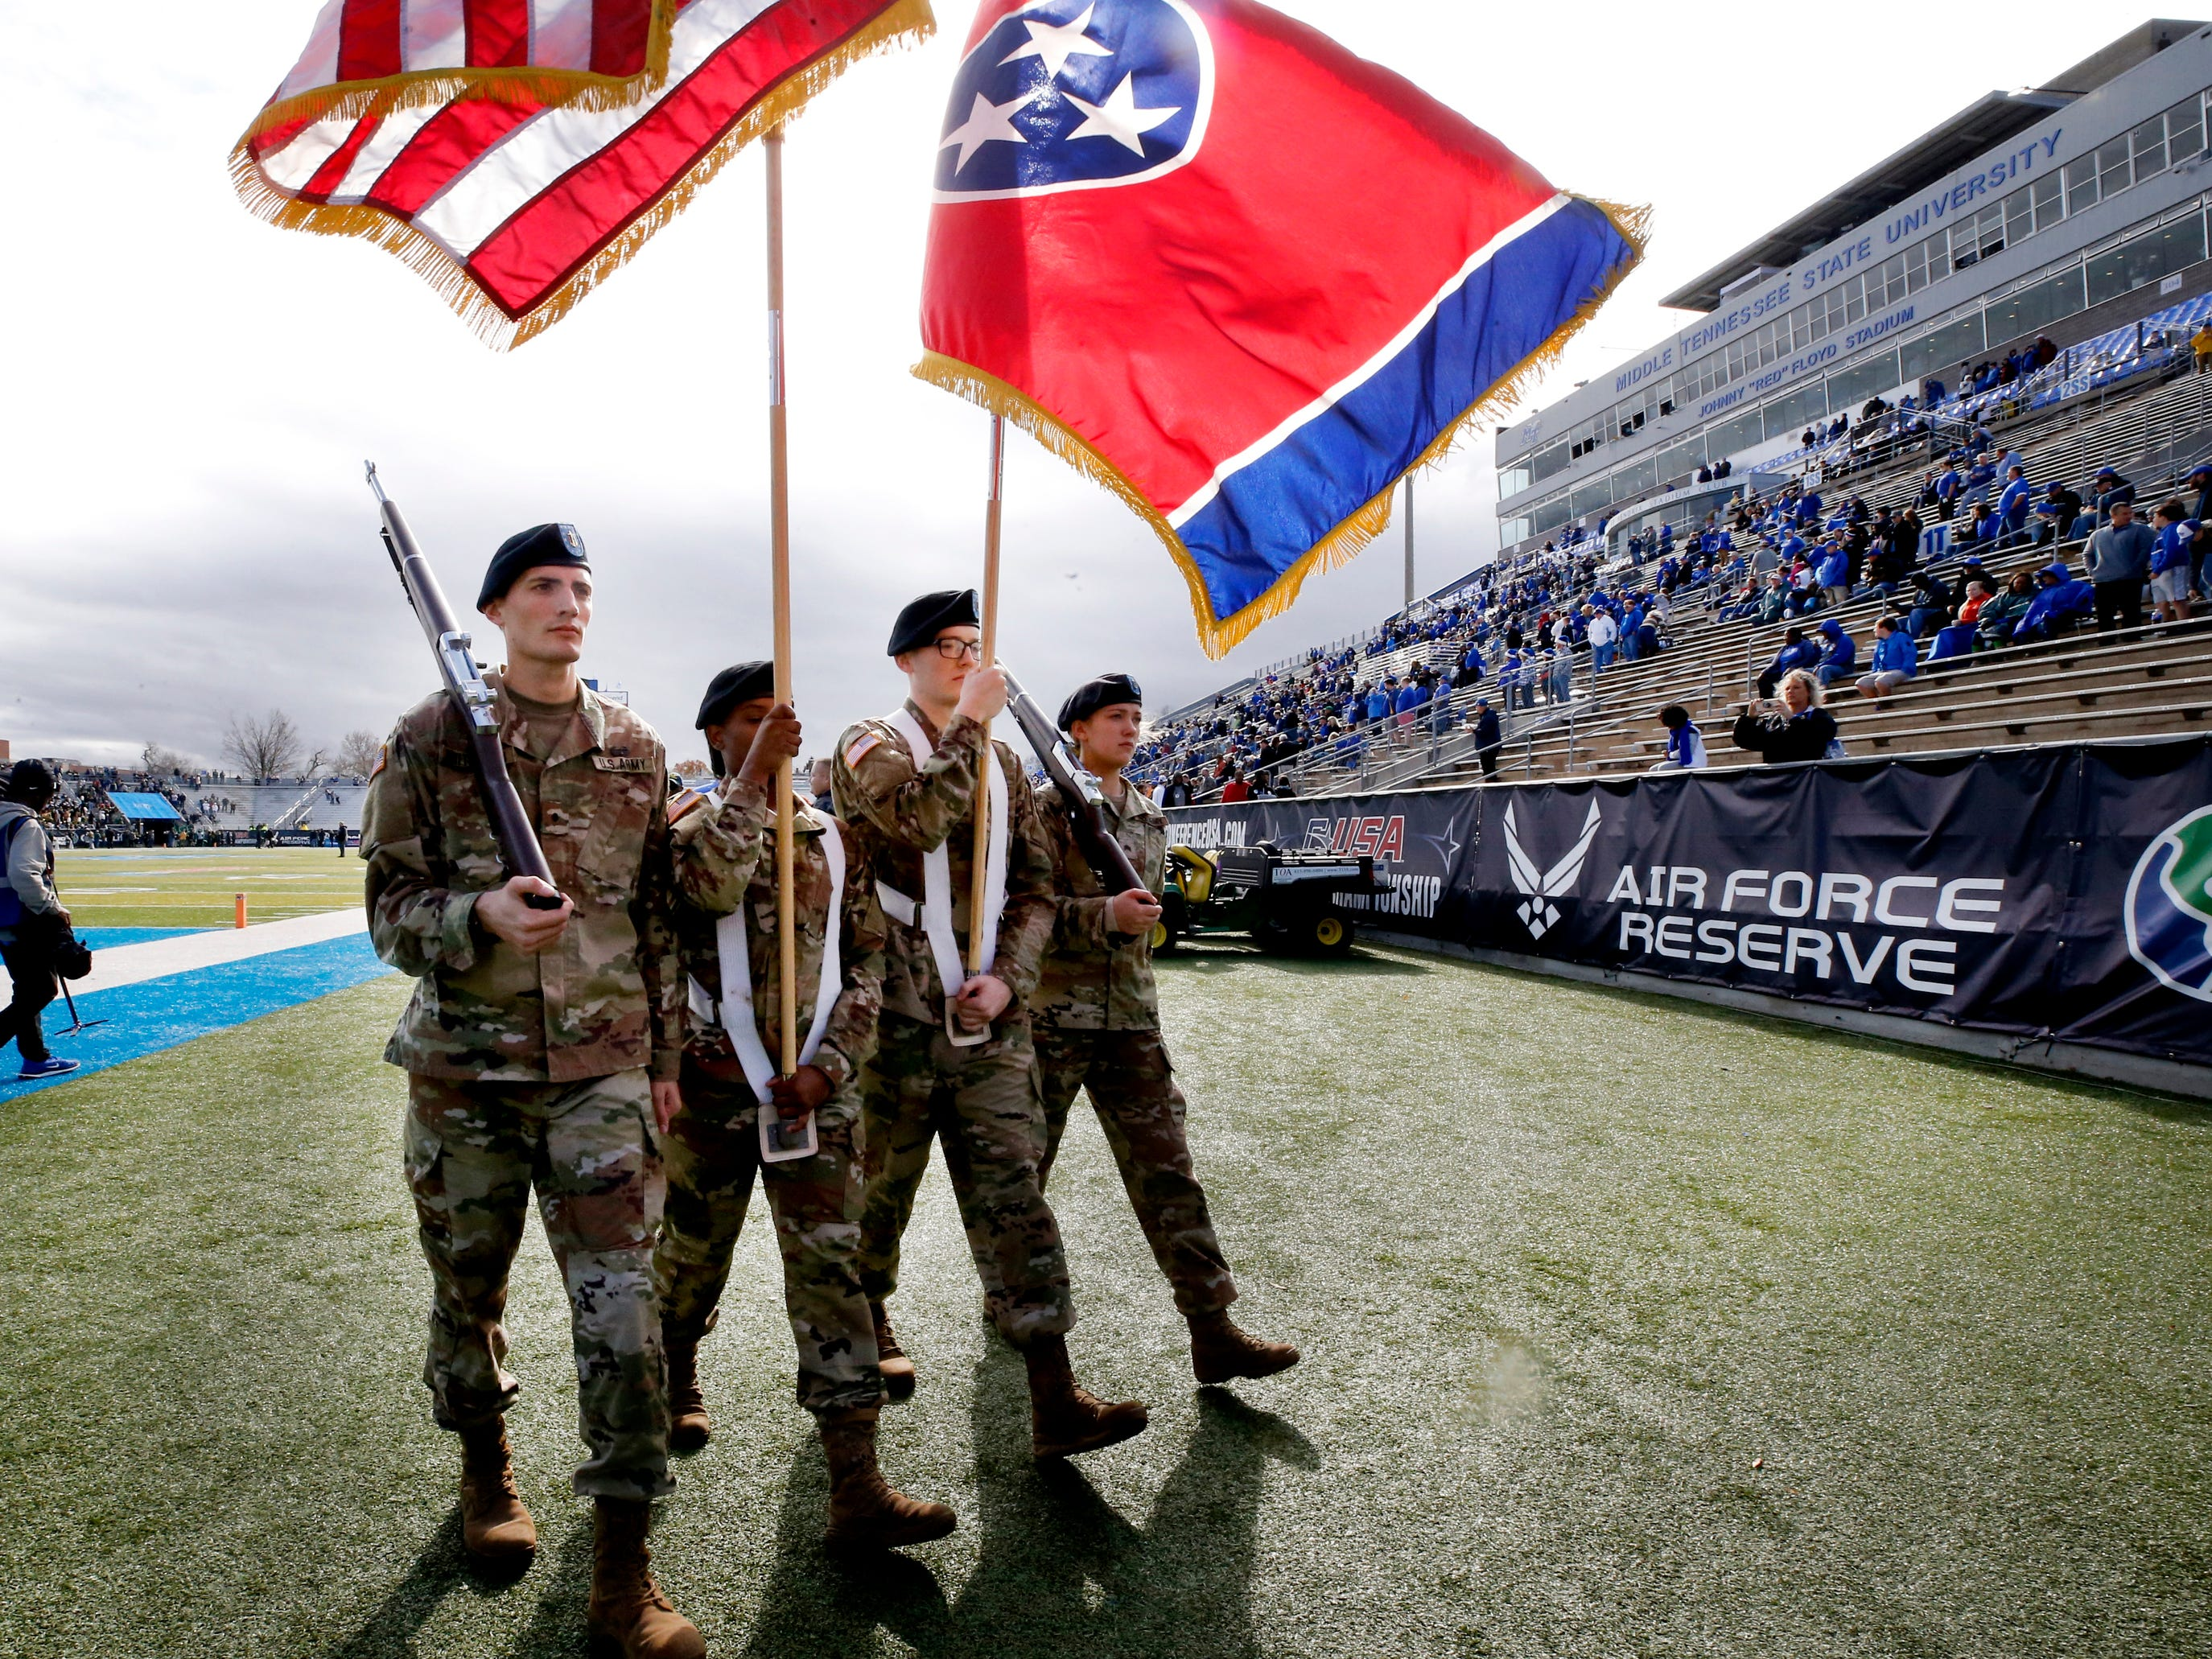 The color guard comes off the field after the anthem and before the start of the Conference USA Championship between MTSU and UAB, at MTSU on Saturday, Dec. 1, 2018.